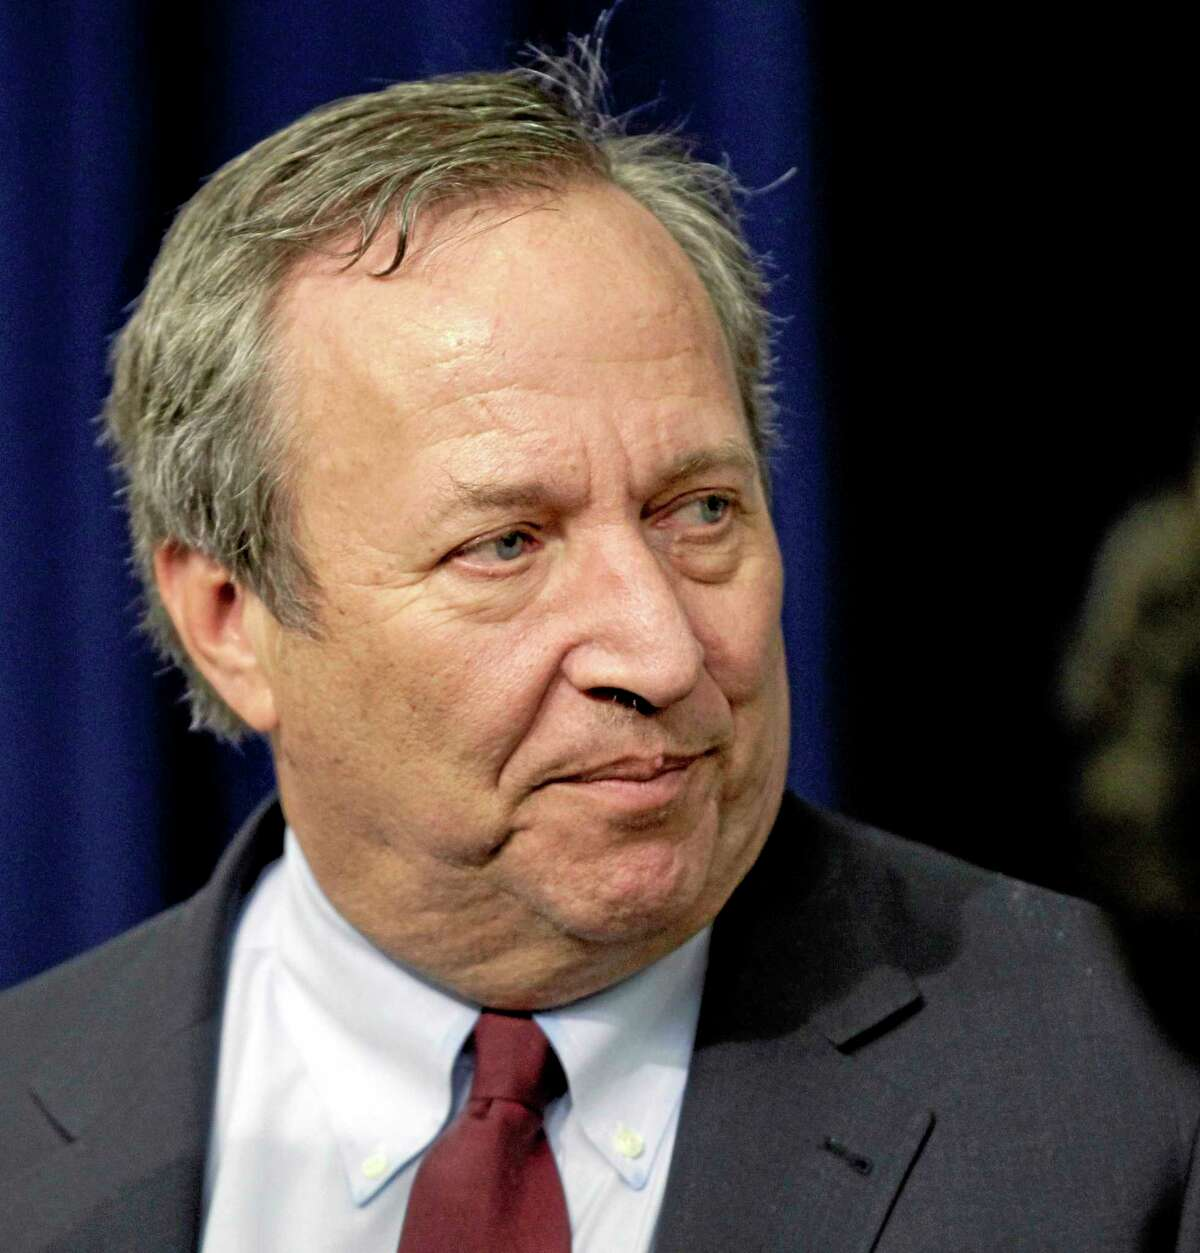 File- This Dec. 17, 2010 file photo shows Director of the National Economic Council Lawrence Summers arriving for the tax cut extension bill during a ceremony at the Eisenhower Executive Office Building in the White House complex in Washington. The staunch resistance that pushed Lawrence Summers to withdraw from consideration for Federal Reserve chairman came from Obama's own Democratic base, not the conservatives who kept him from nominating Susan Rice as secretary of state. (AP Photo/J. Scott Applewhite, File)